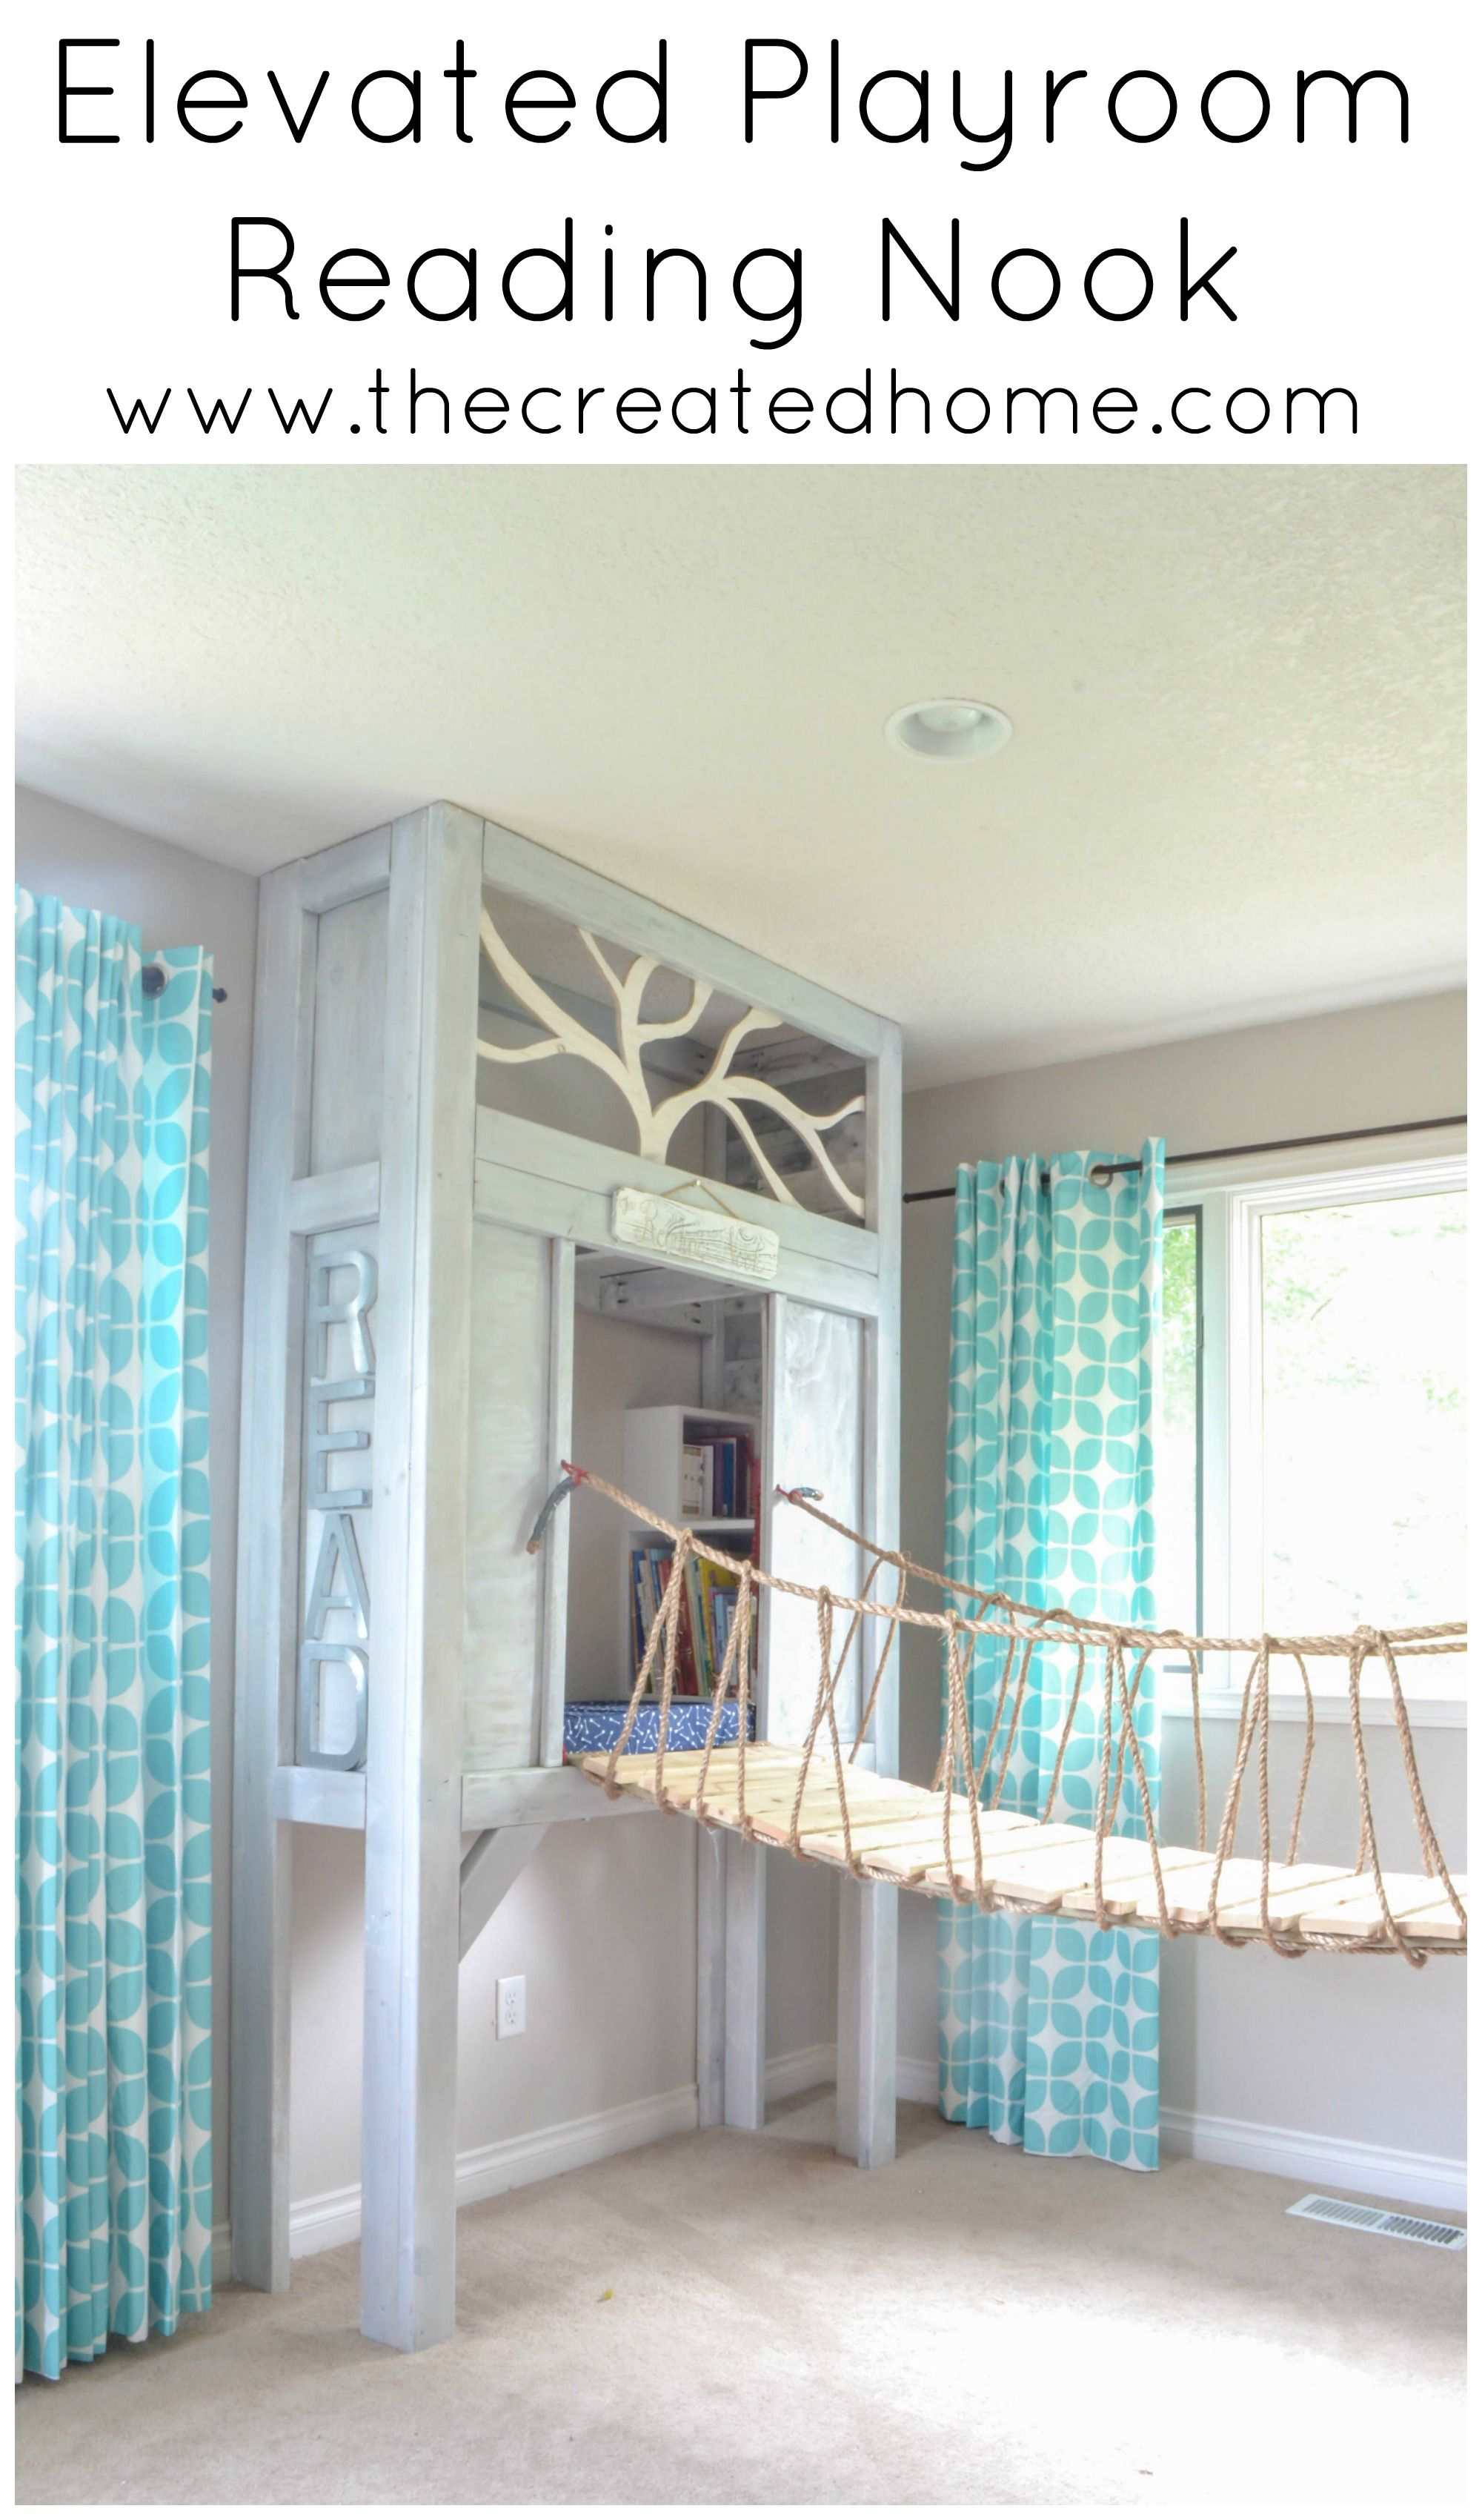 How to build an elevated reading nook  Remodelaholic Contributors  Pinterest  Reading nooks